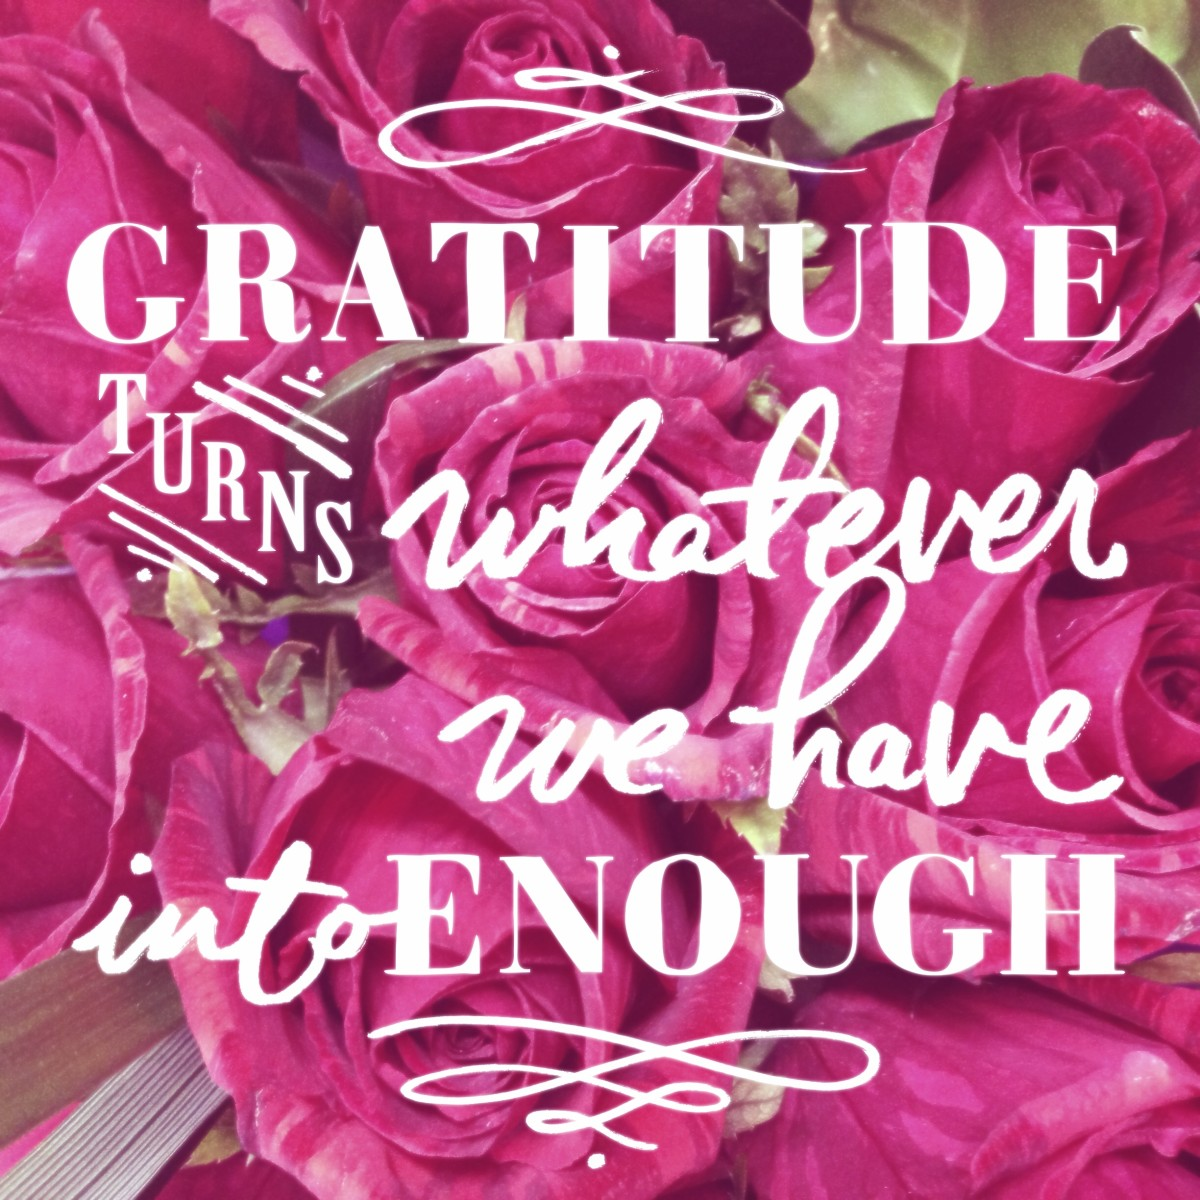 Gratitude turns whatever we have into enough.